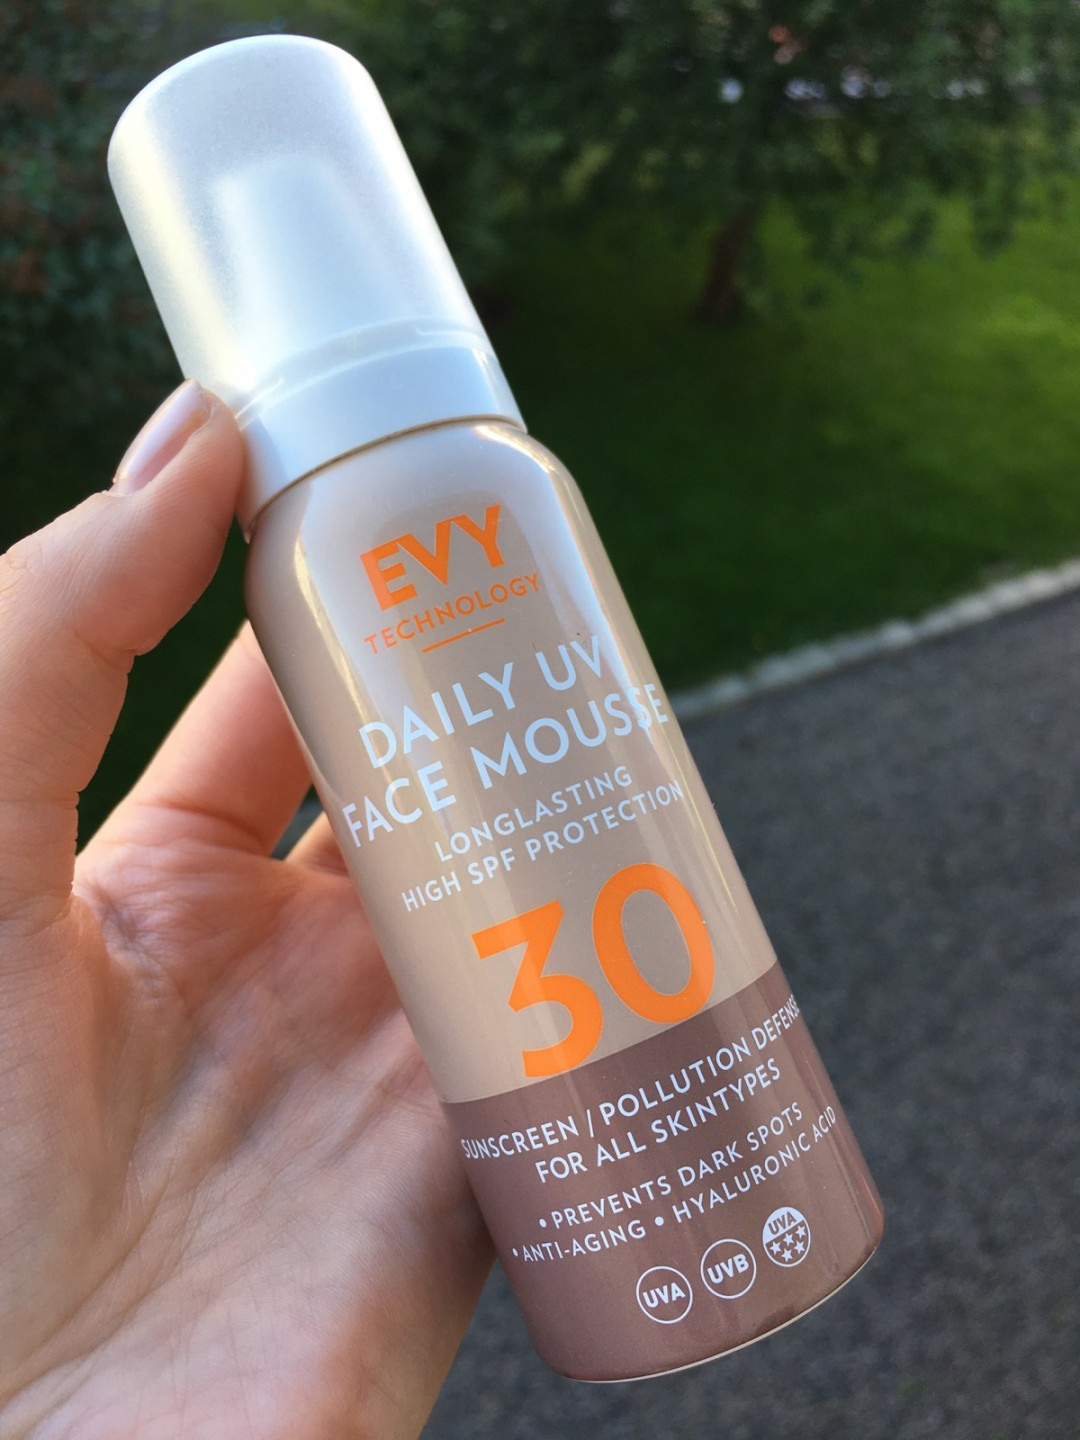 Evy daily uv face mousse can